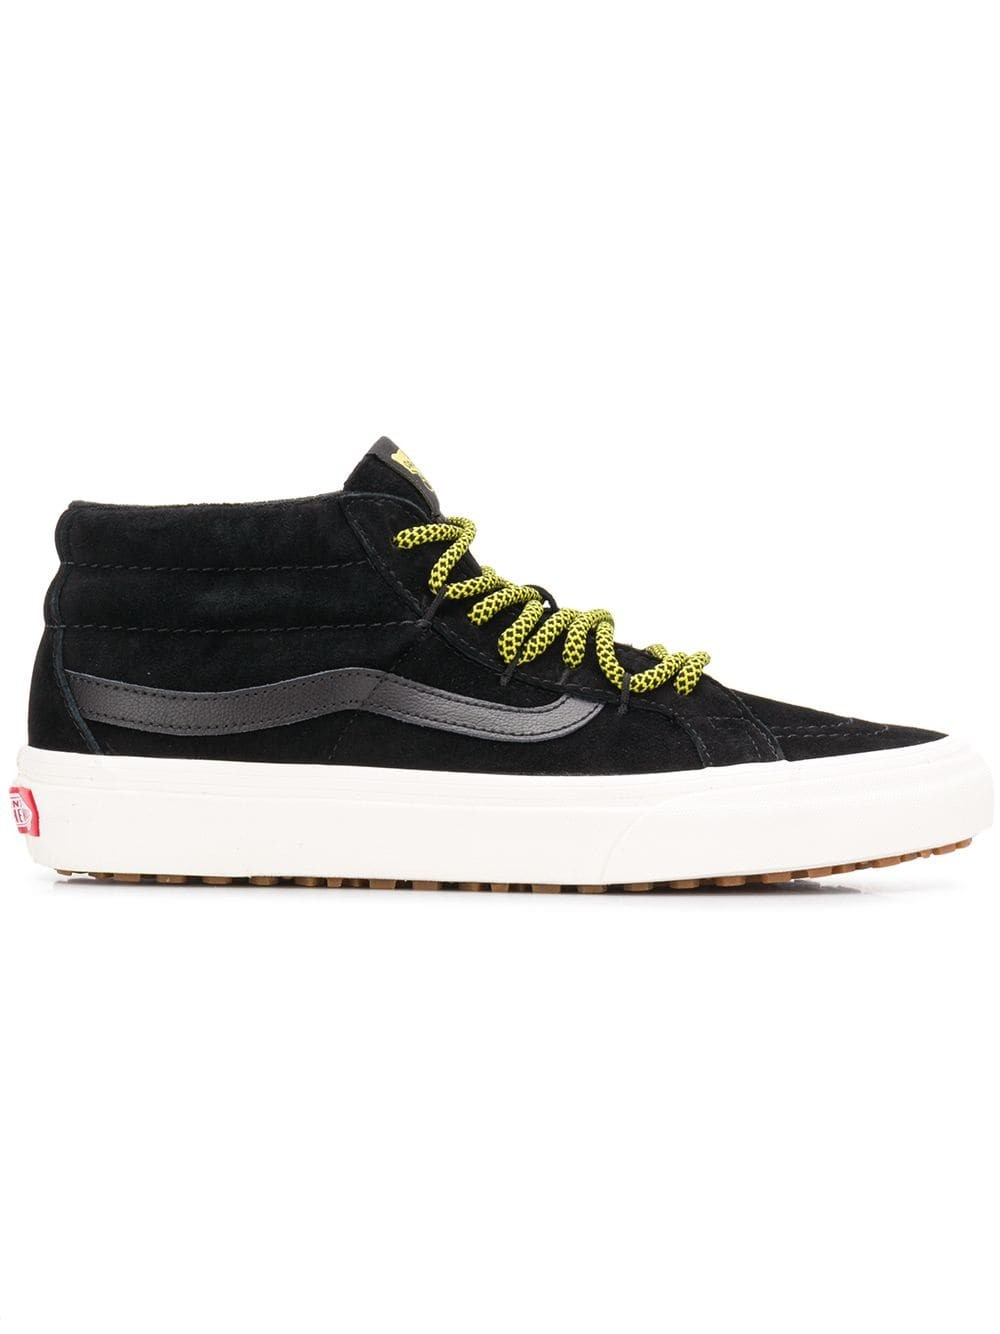 Vans New Sk8-Mid Reissue Ghillie MTE Vault Hombre VN0A3TKQI28